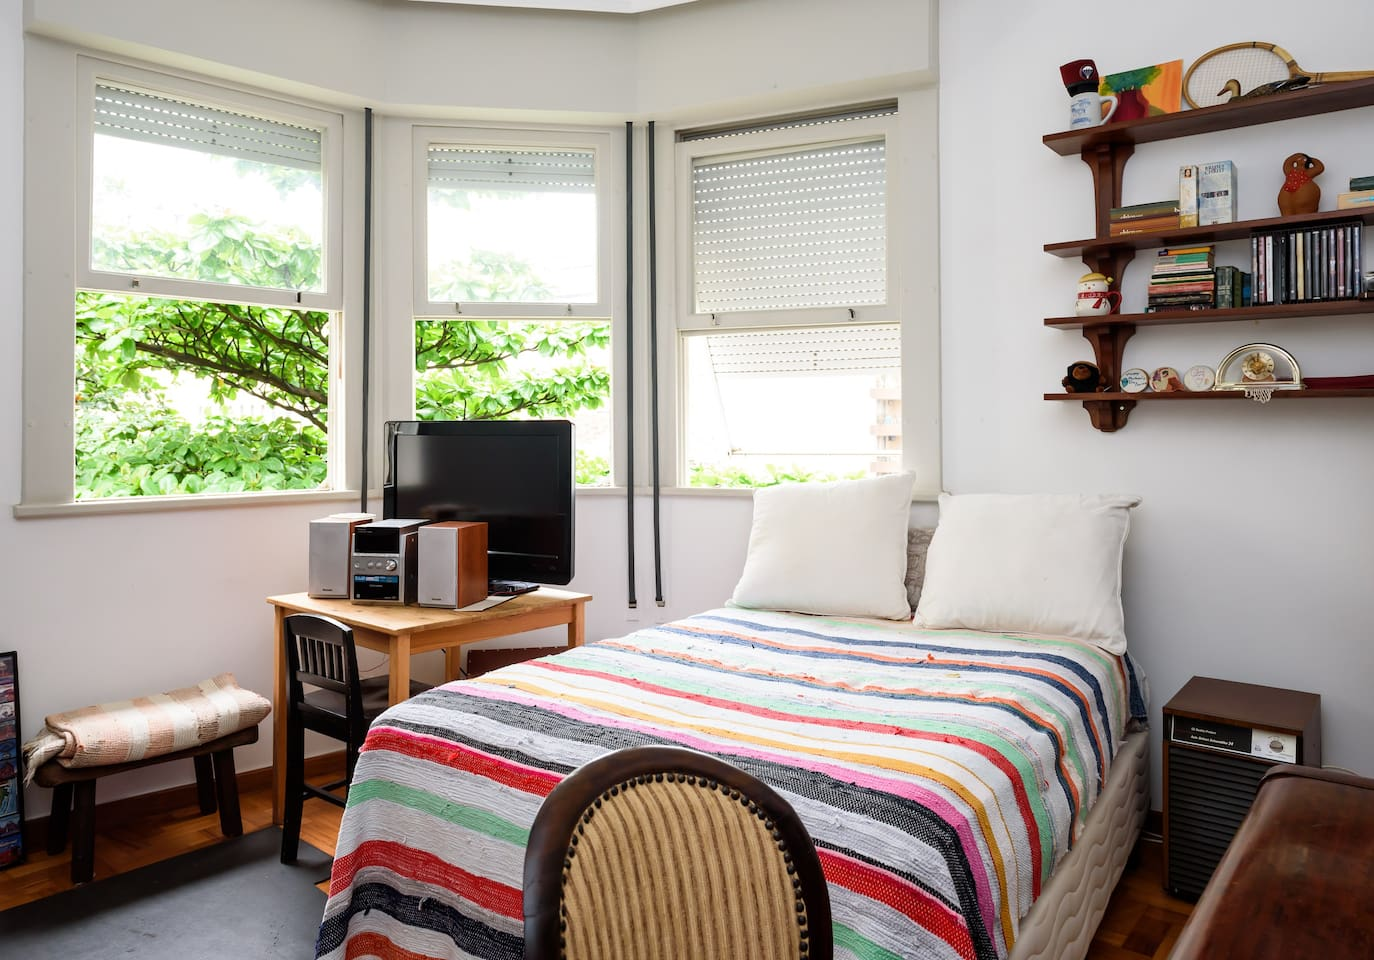 This is the guest room where you will be staying, with big bay windows.